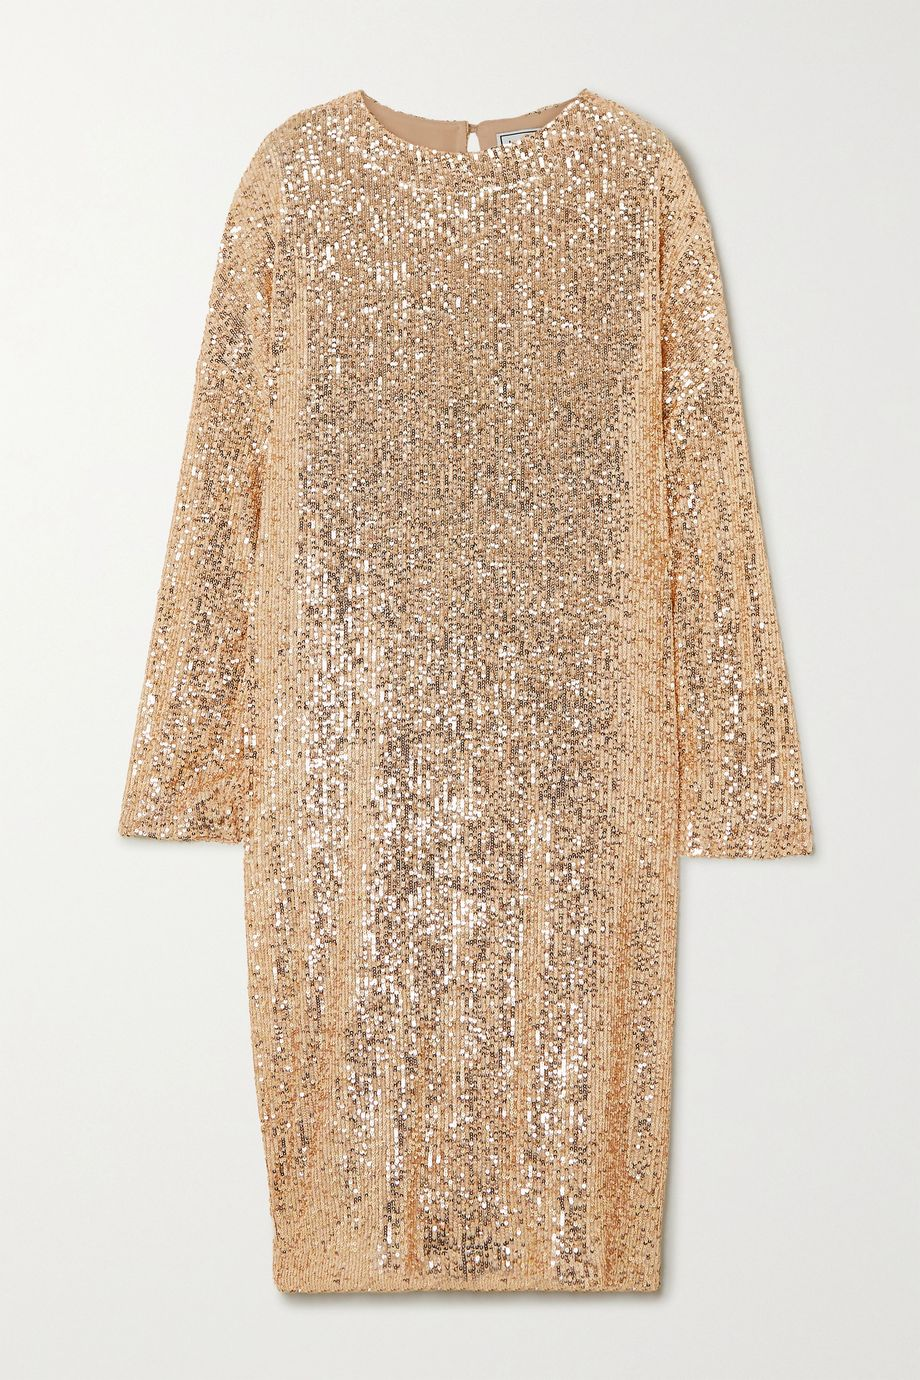 In The Mood For Love Elisa sequined tulle dress